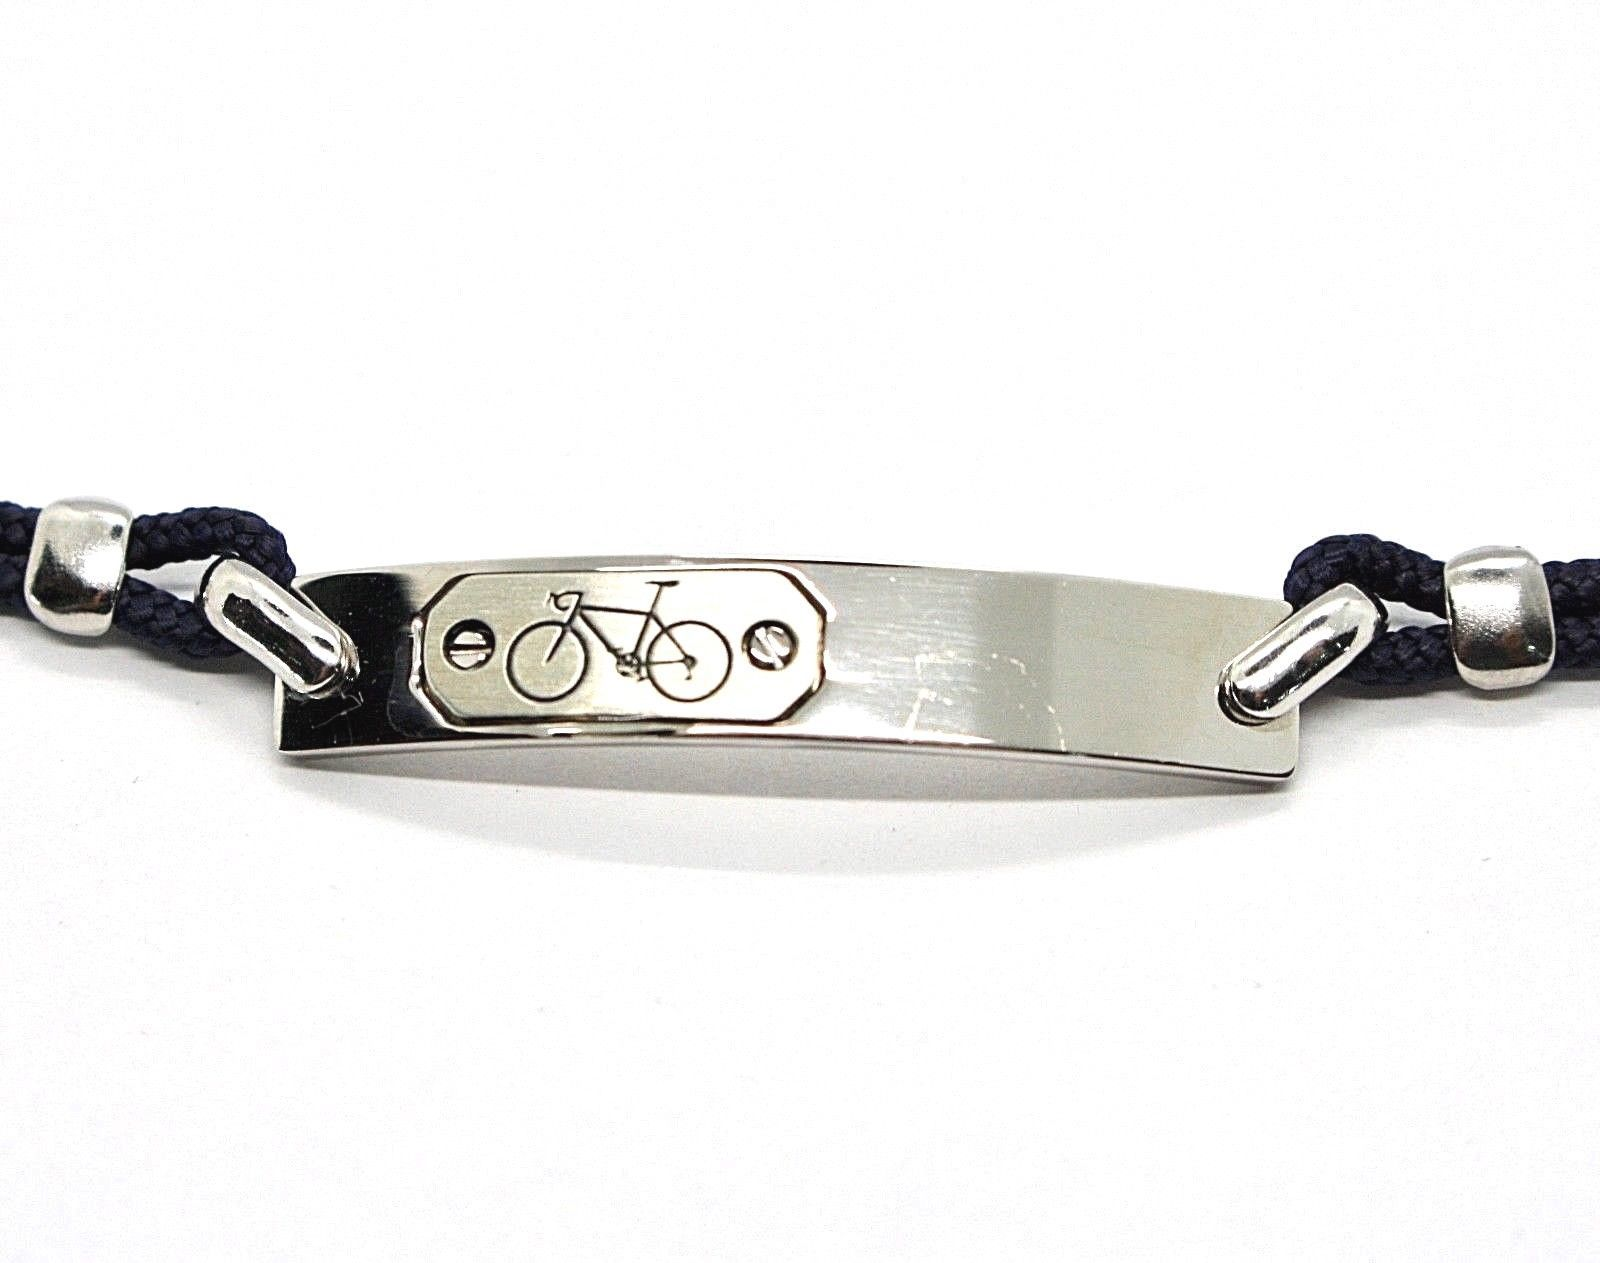 SILVER 925 BRACELET RHODIUM WITH PLATE with BICYCLE ENGRAVED AND ROPE 7 1/8in